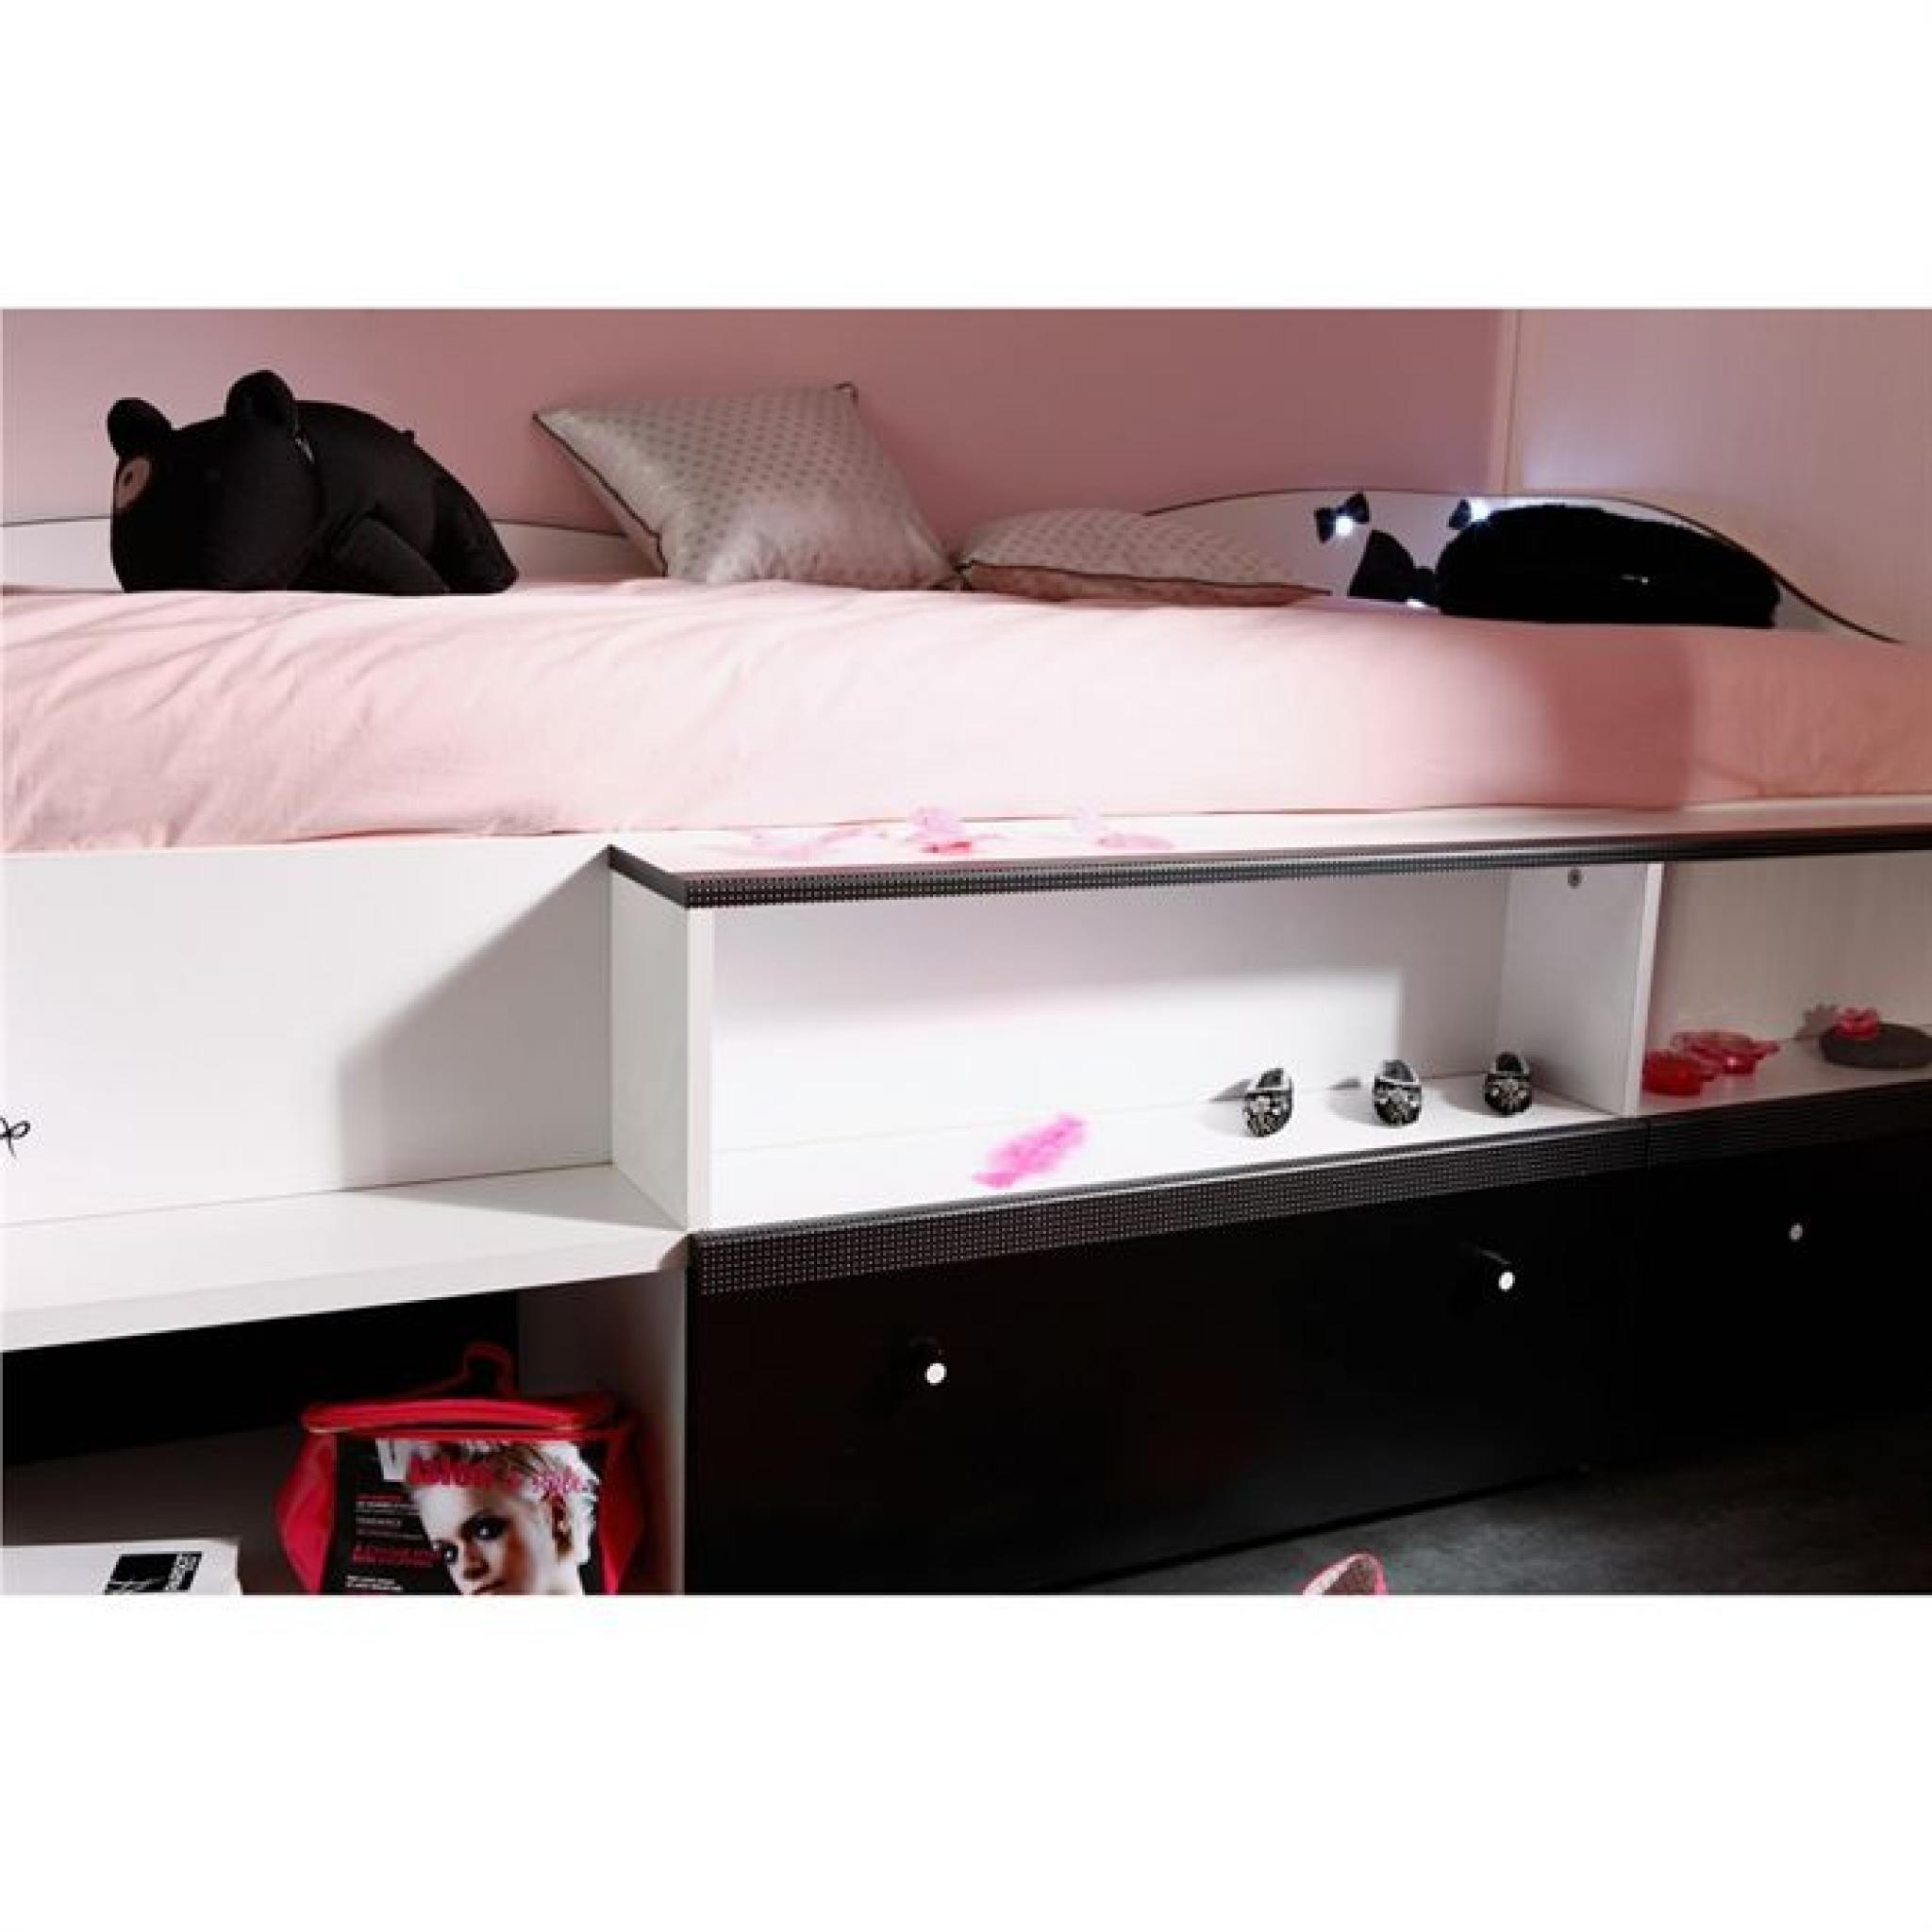 pretty lit enfant combin 90x190 blanc noir achat vente lit mezzanine pas cher couleur et. Black Bedroom Furniture Sets. Home Design Ideas